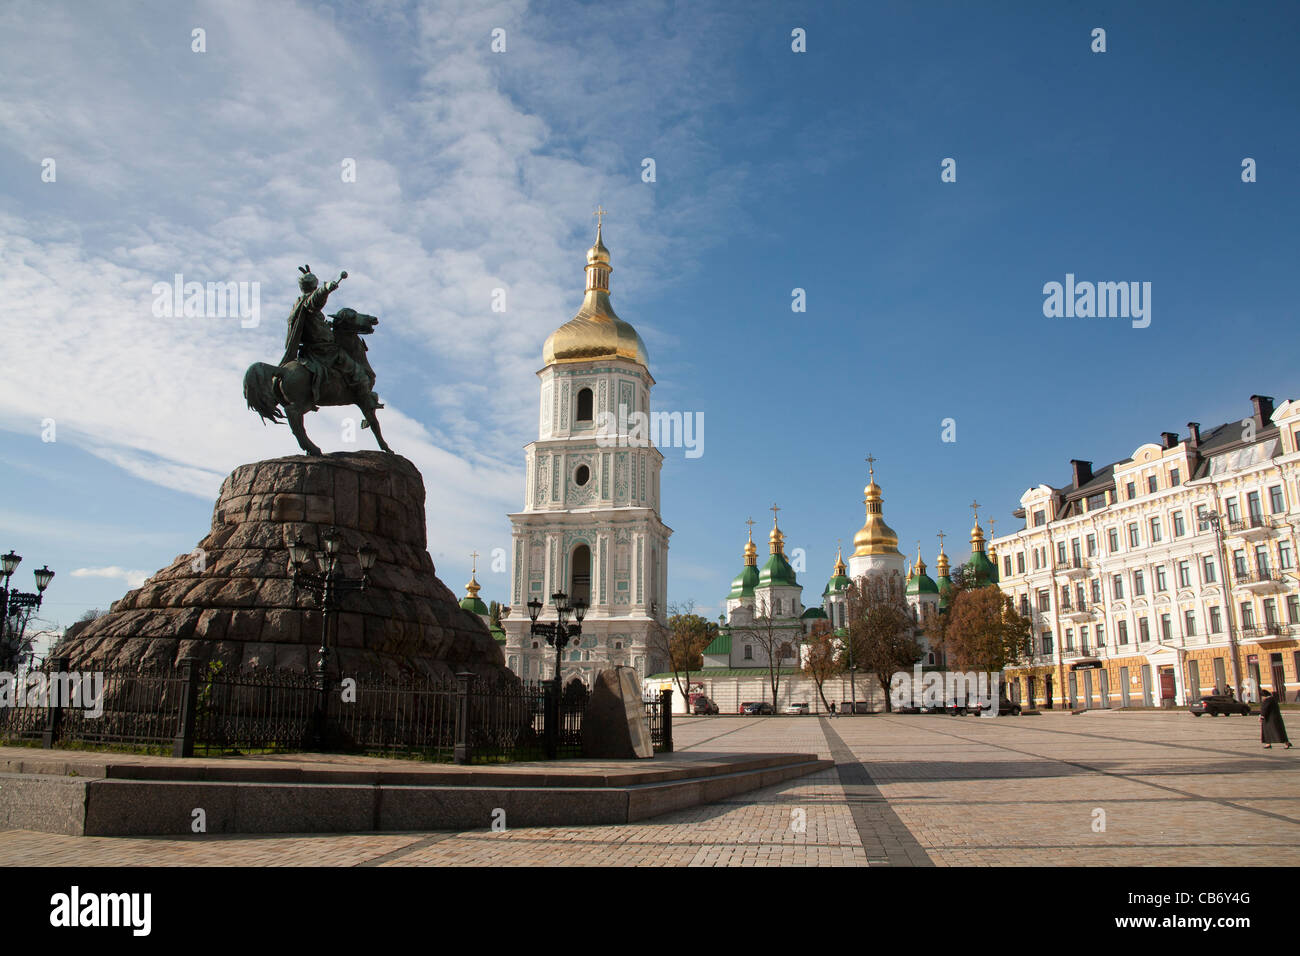 Sophia Square: history, architectural monuments, events 19